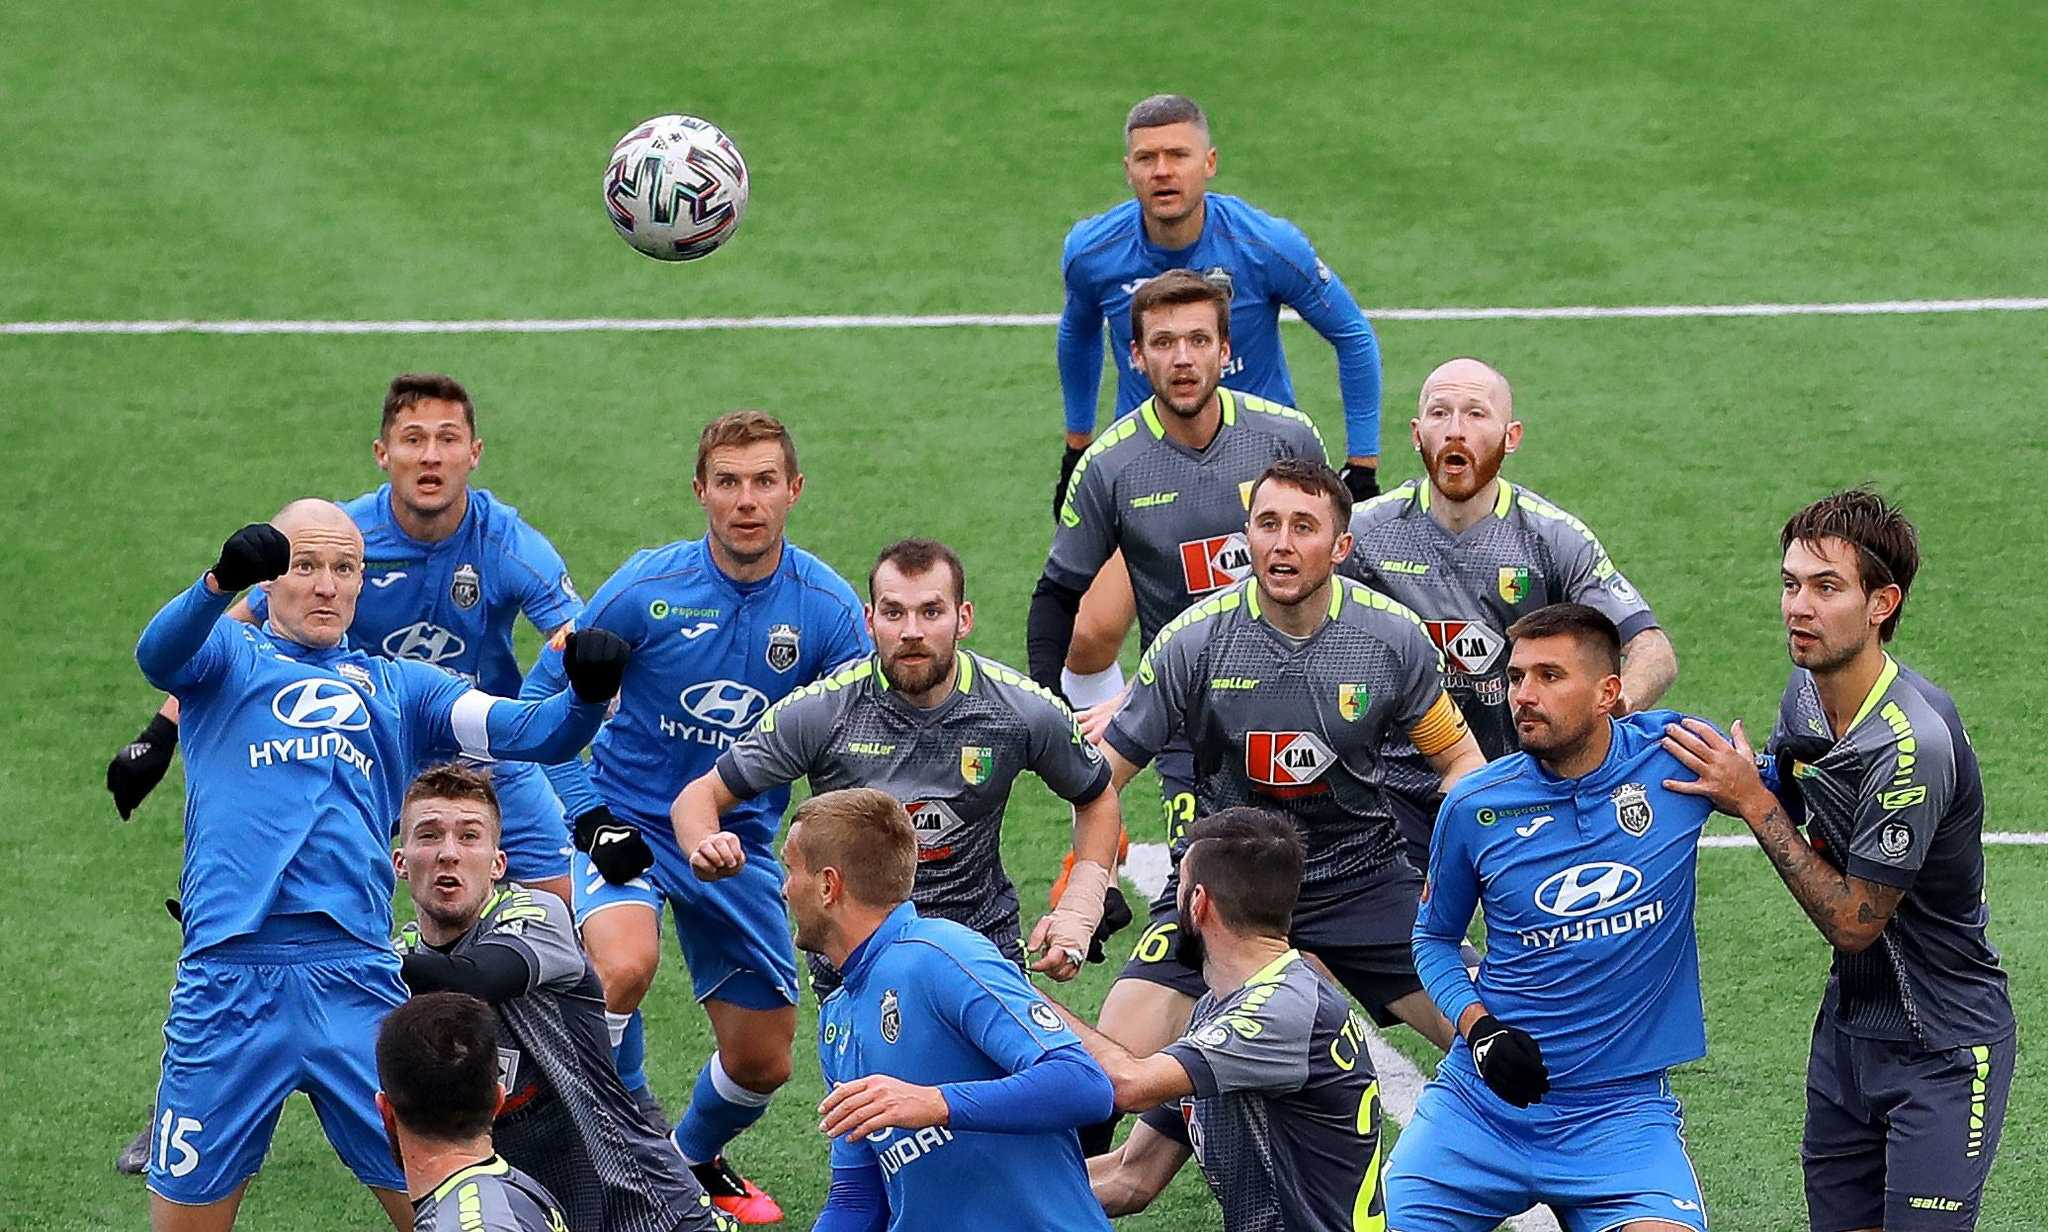 Belarus: League Suspended Amid Protests